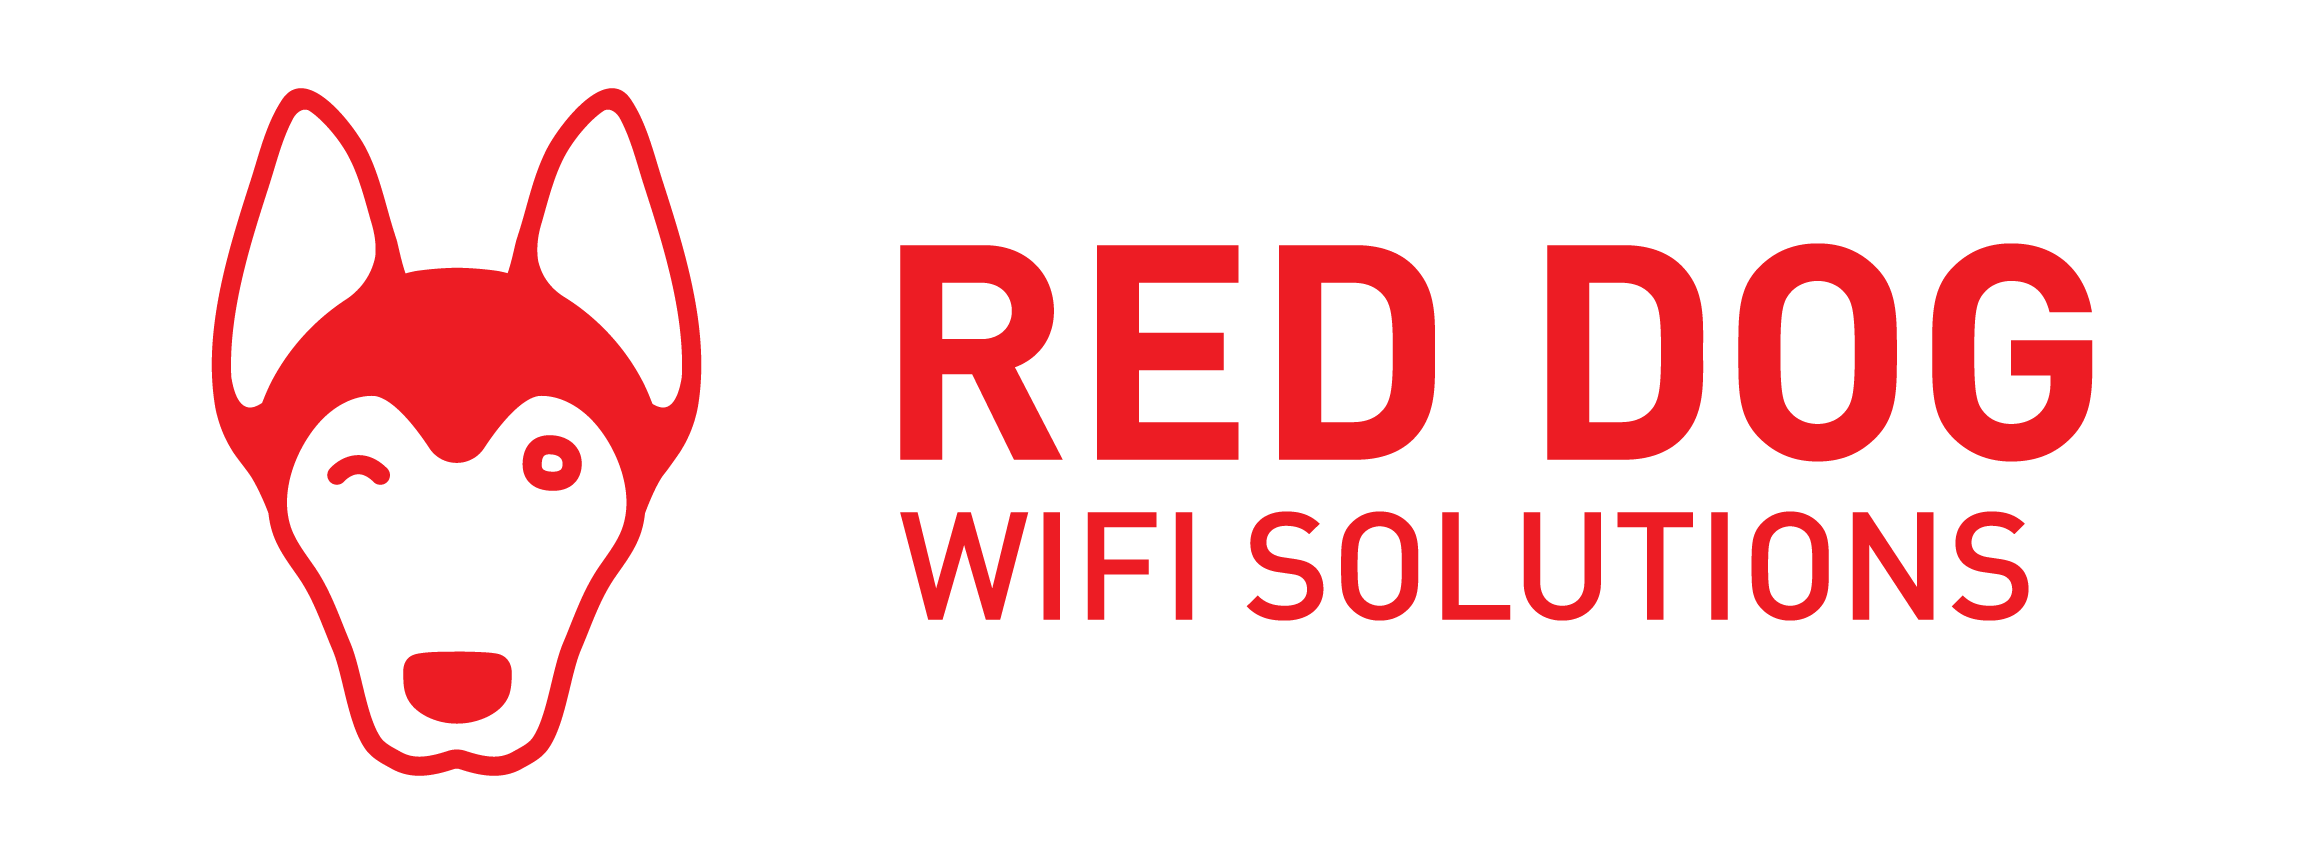 Red Dog WiFi